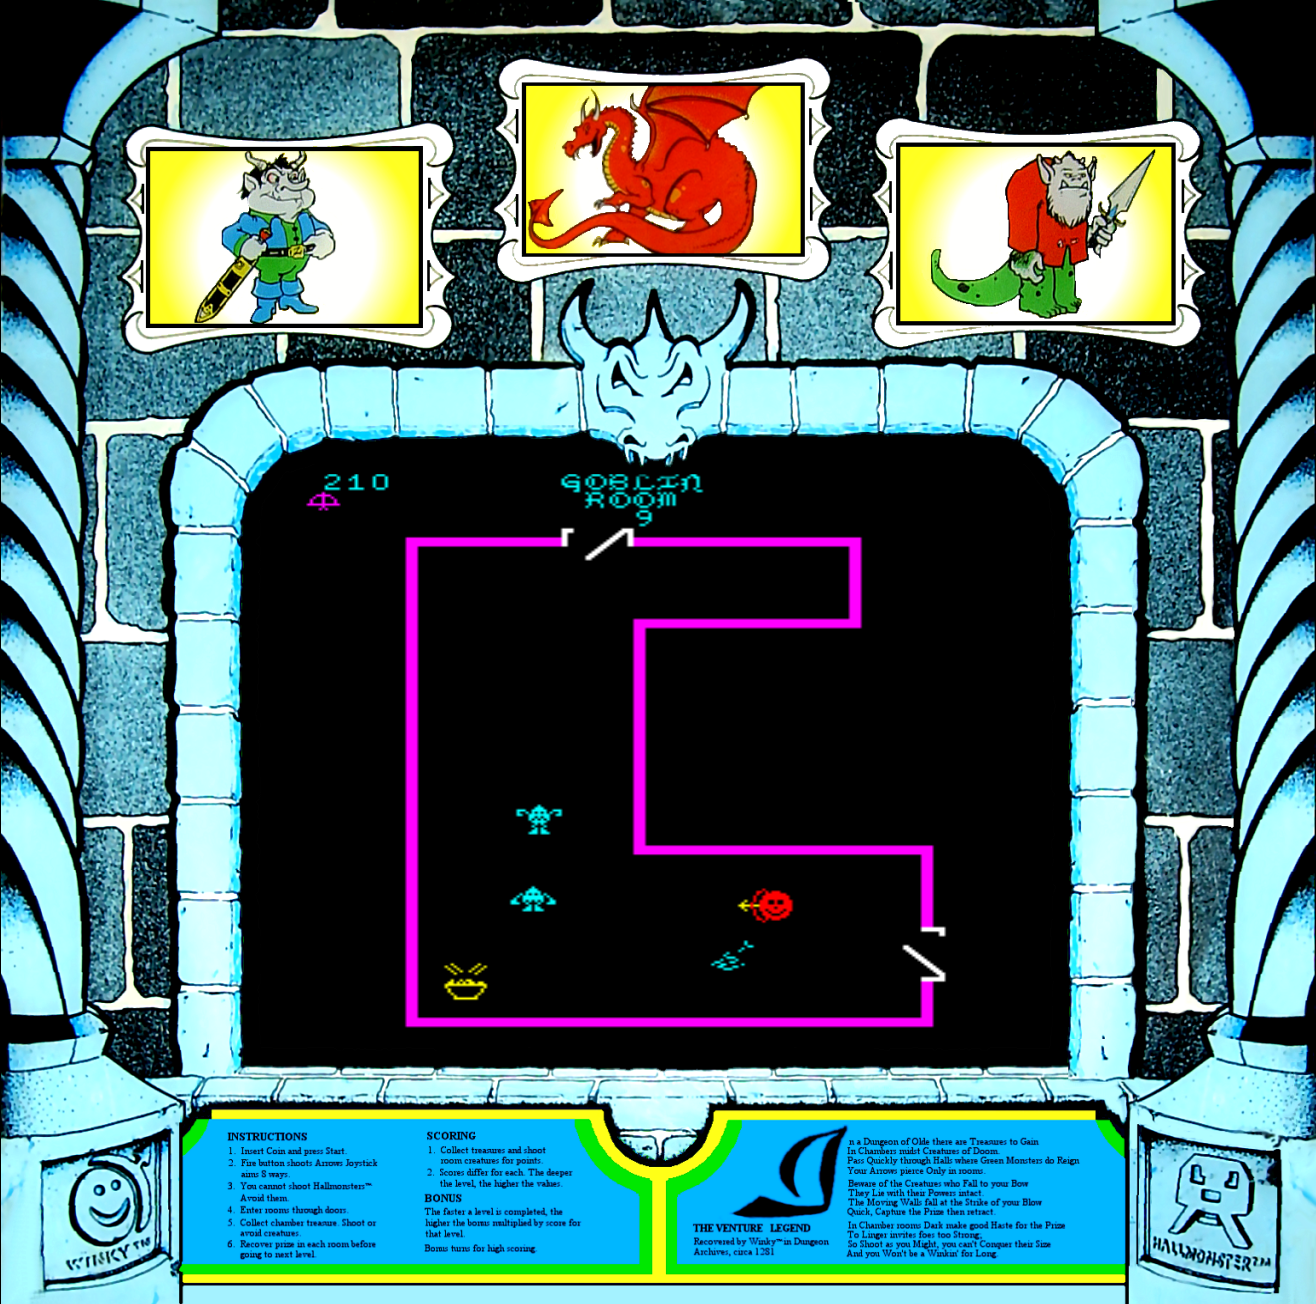 Snap of the arcade version of Venture, Exidy 1981